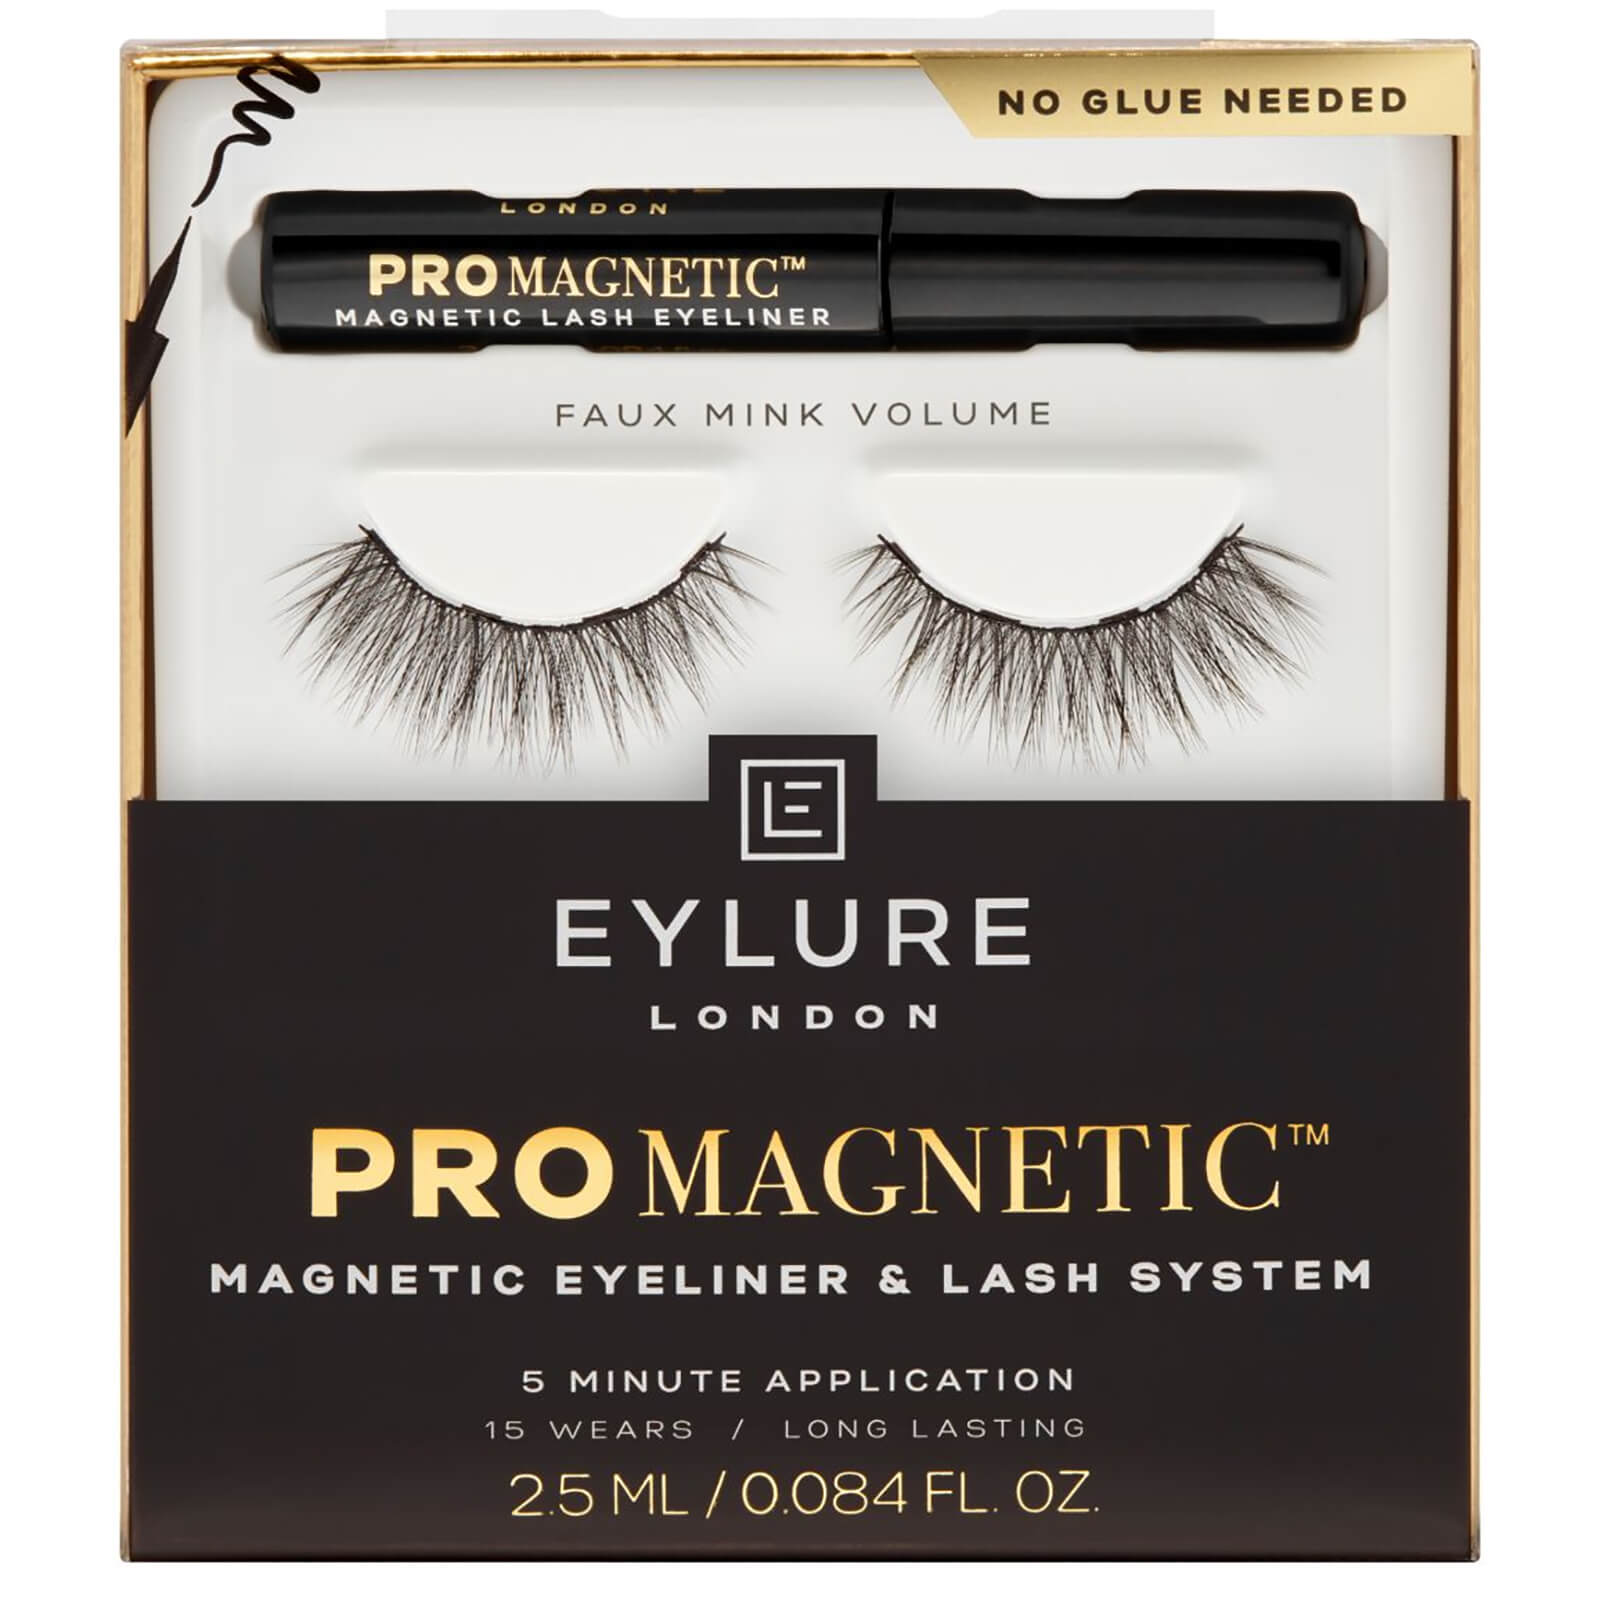 Eylure Pro Magnetic Kit Magnetic Eyeliner and Lash System 2.5ml